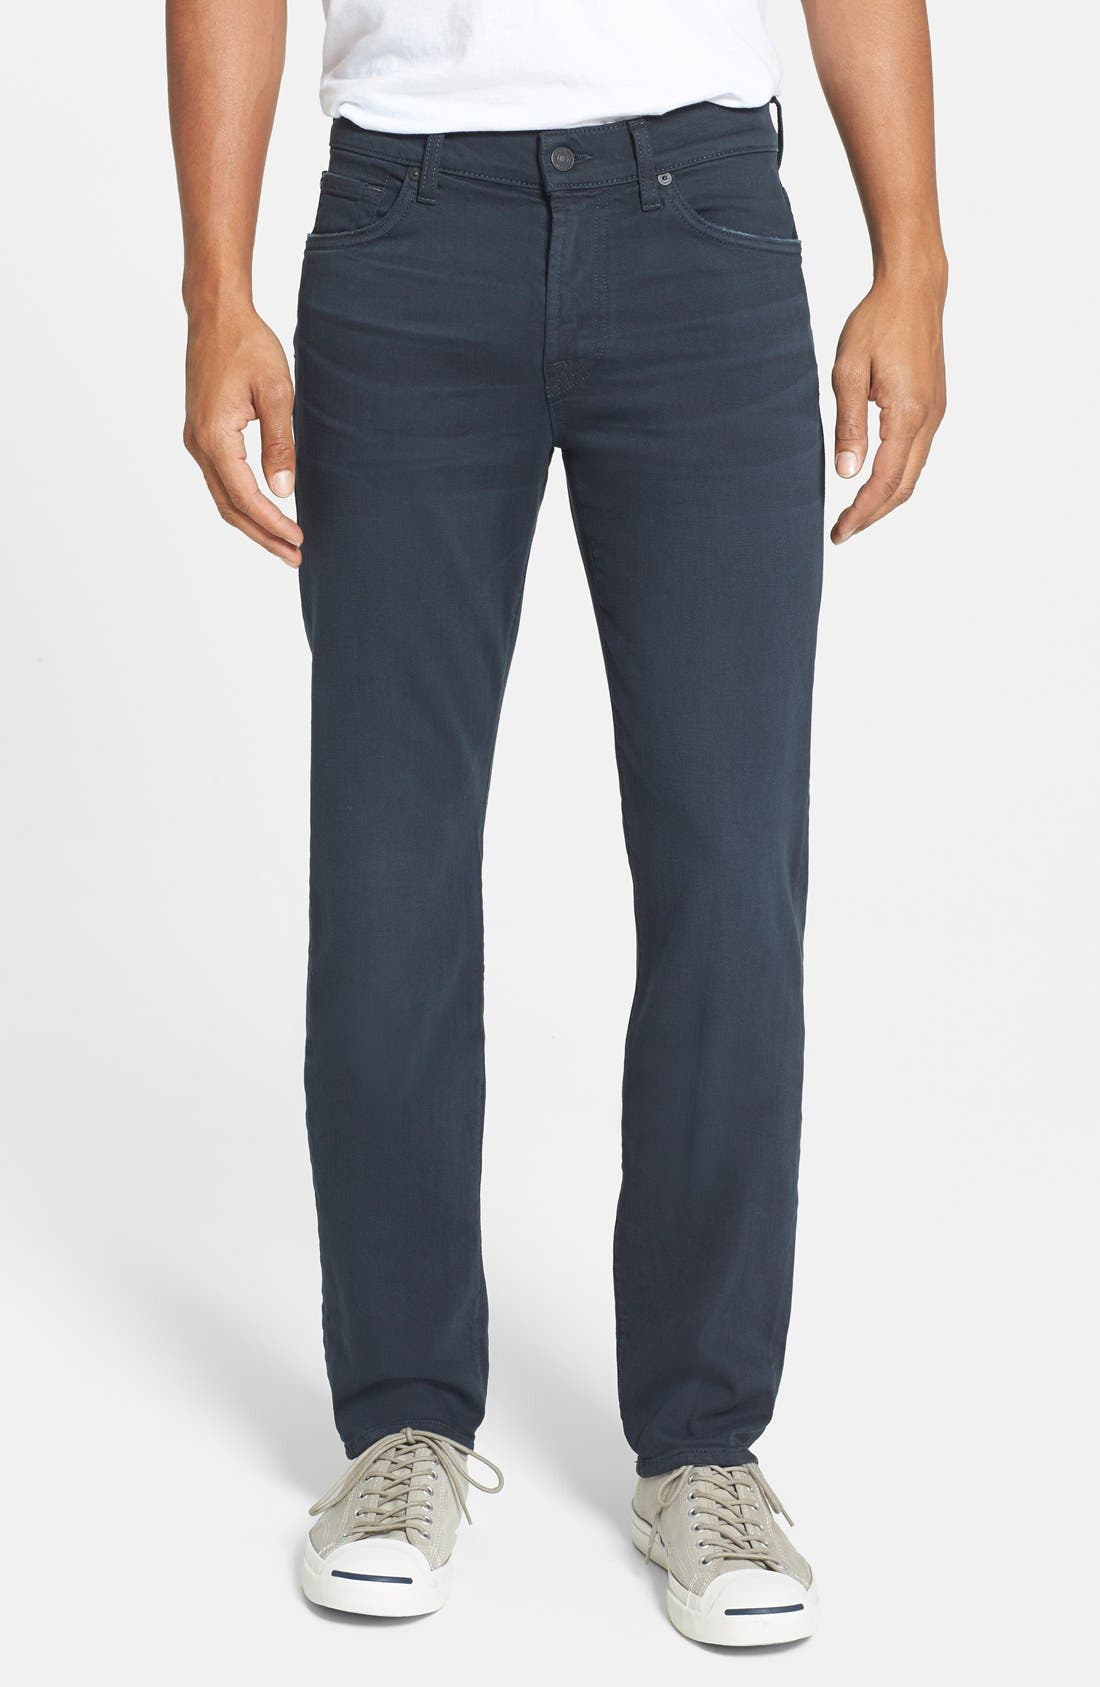 'Slimmy - Luxe Performance' Slim Fit Jeans,                             Main thumbnail 1, color,                             004